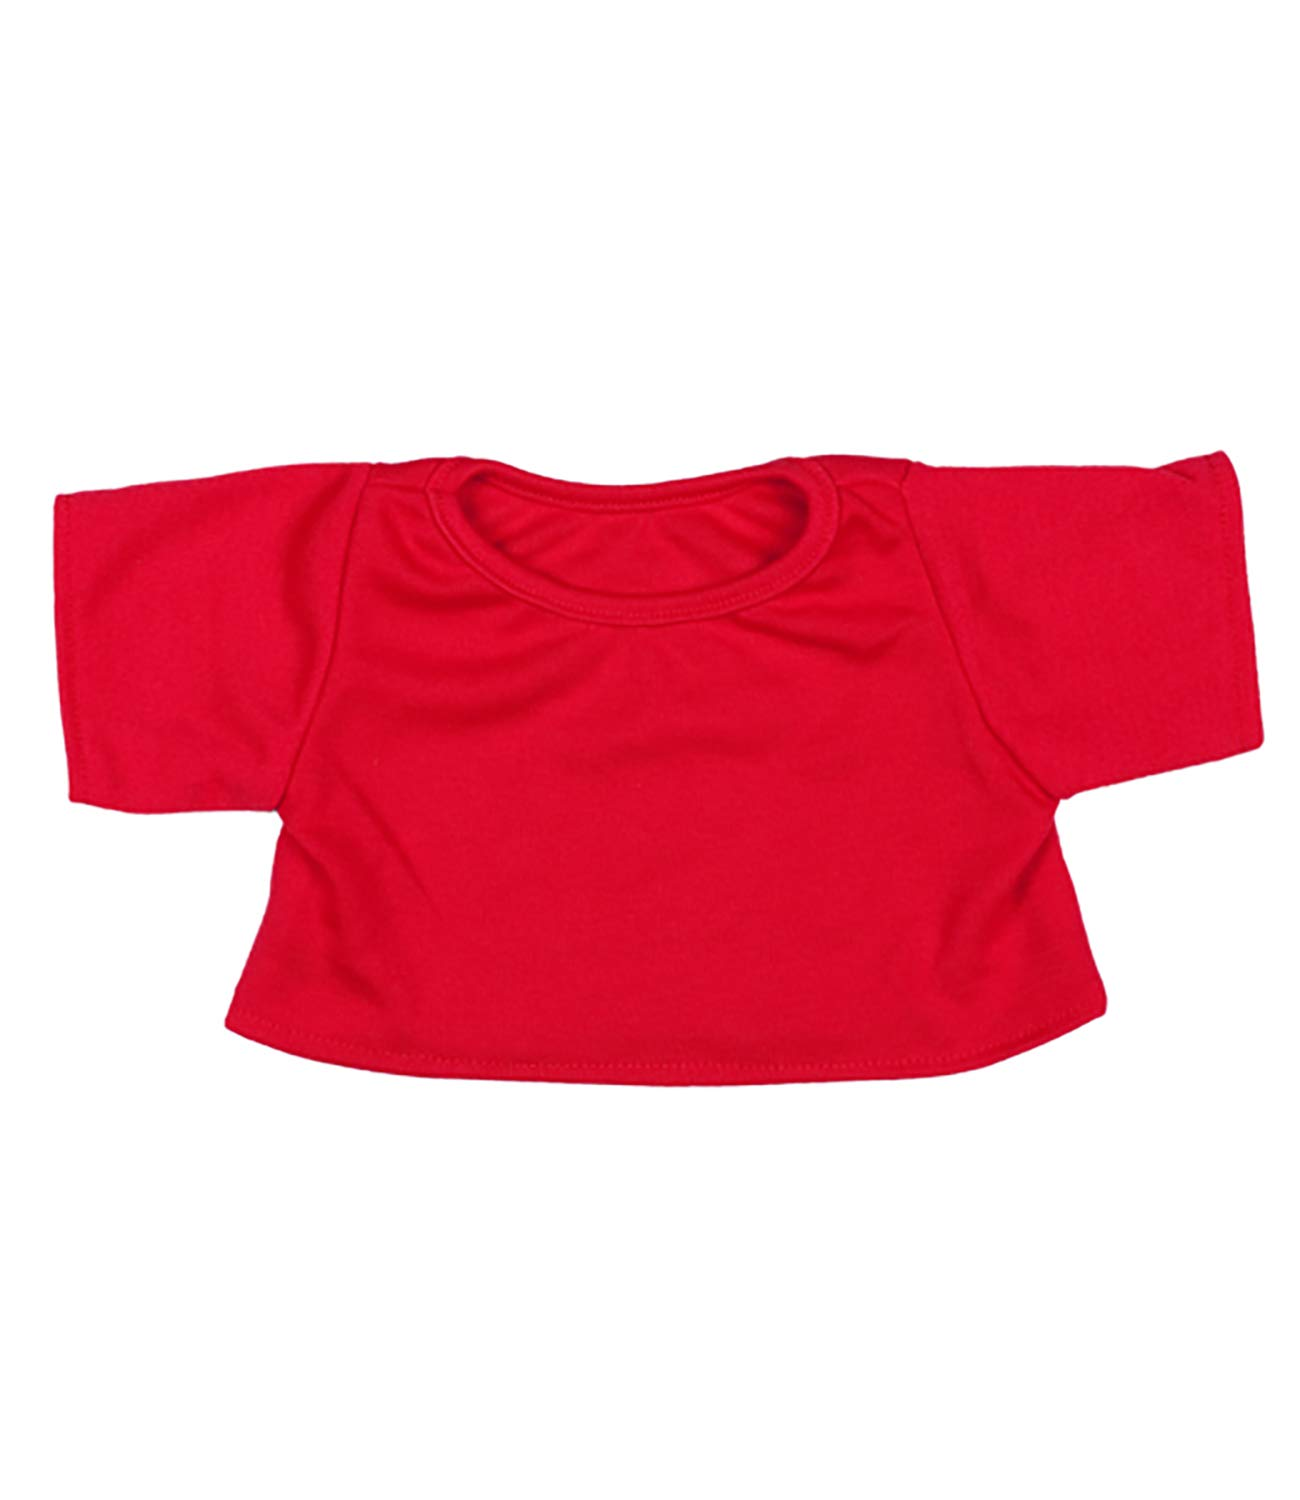 Vermont Teddy Bears Red T-Shirt Outfit Teddy Bear Clothes Fit 14-18 Build-a-bear and Make Your Own Stuffed Animals